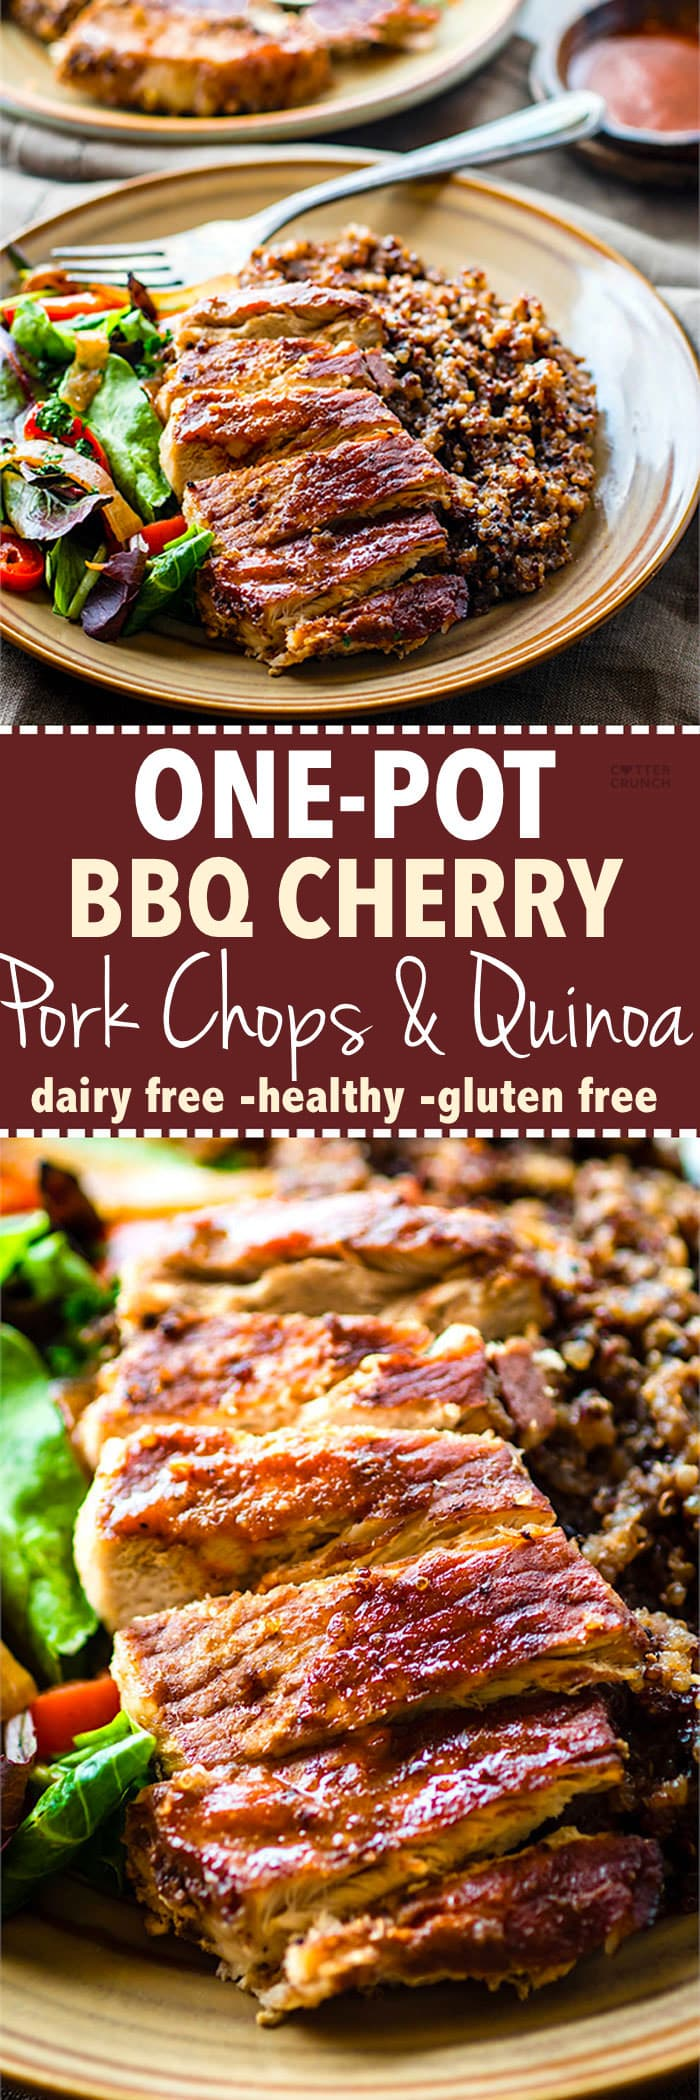 Easy Gluten free ONE-POT BBQ Cherry Pork Chops and Quinoa. A super simple gluten free one-pot meal that feeds the family. Finally, a healthy one-pot BBQ recipe that also makes a great recovery meal. It's balanced in carbs, protein, and healthy fats. Plus loaded with anti-inflammatory properties!